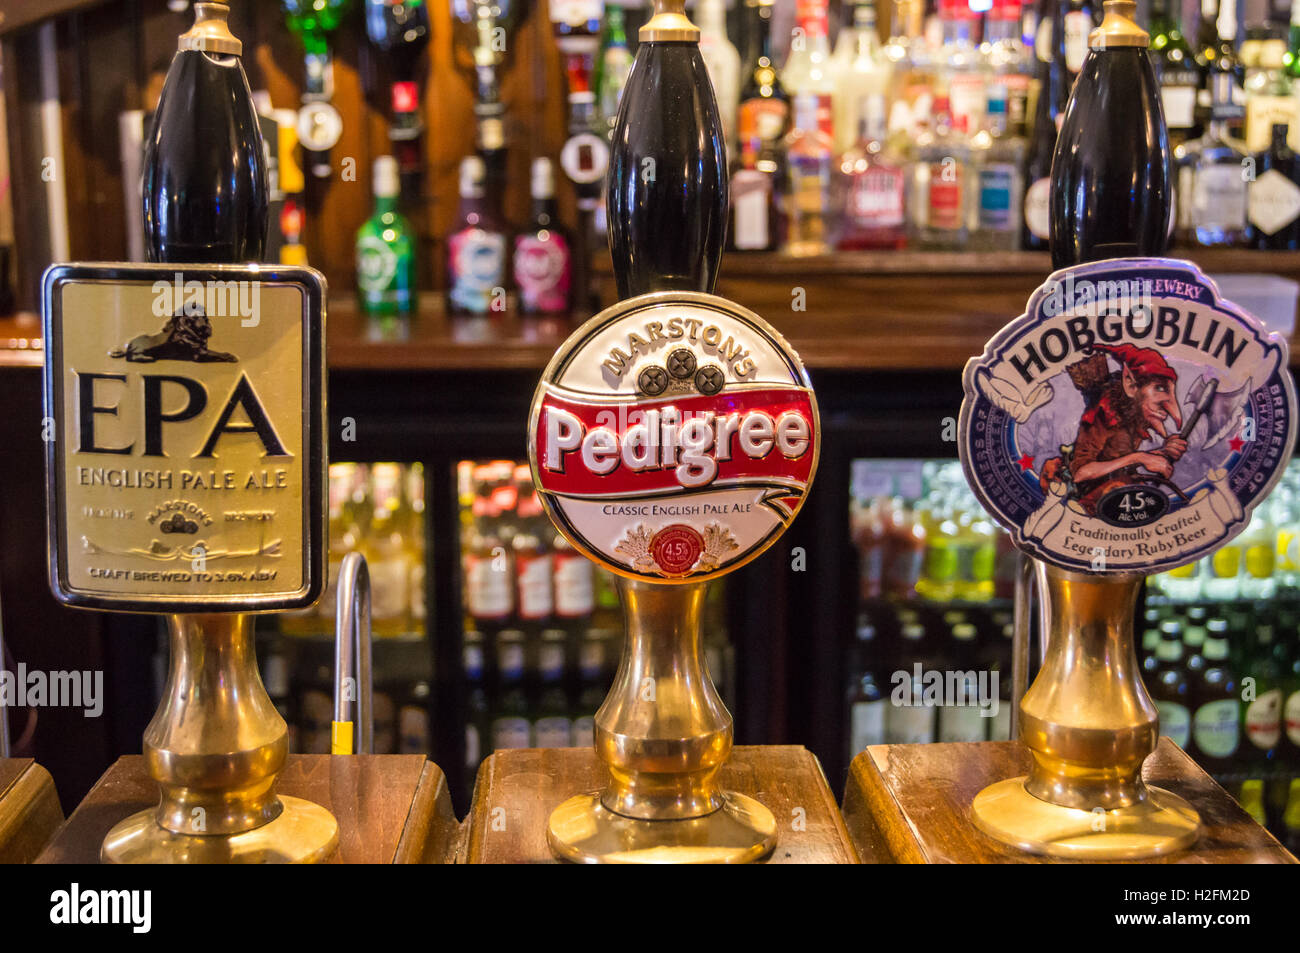 Pump clips for Marston's Pedigree, EPA and Wychwood Hobgoblin on a bar, Queen's Head pub, Hedon, East Riding, Yorkshire, Stock Photo